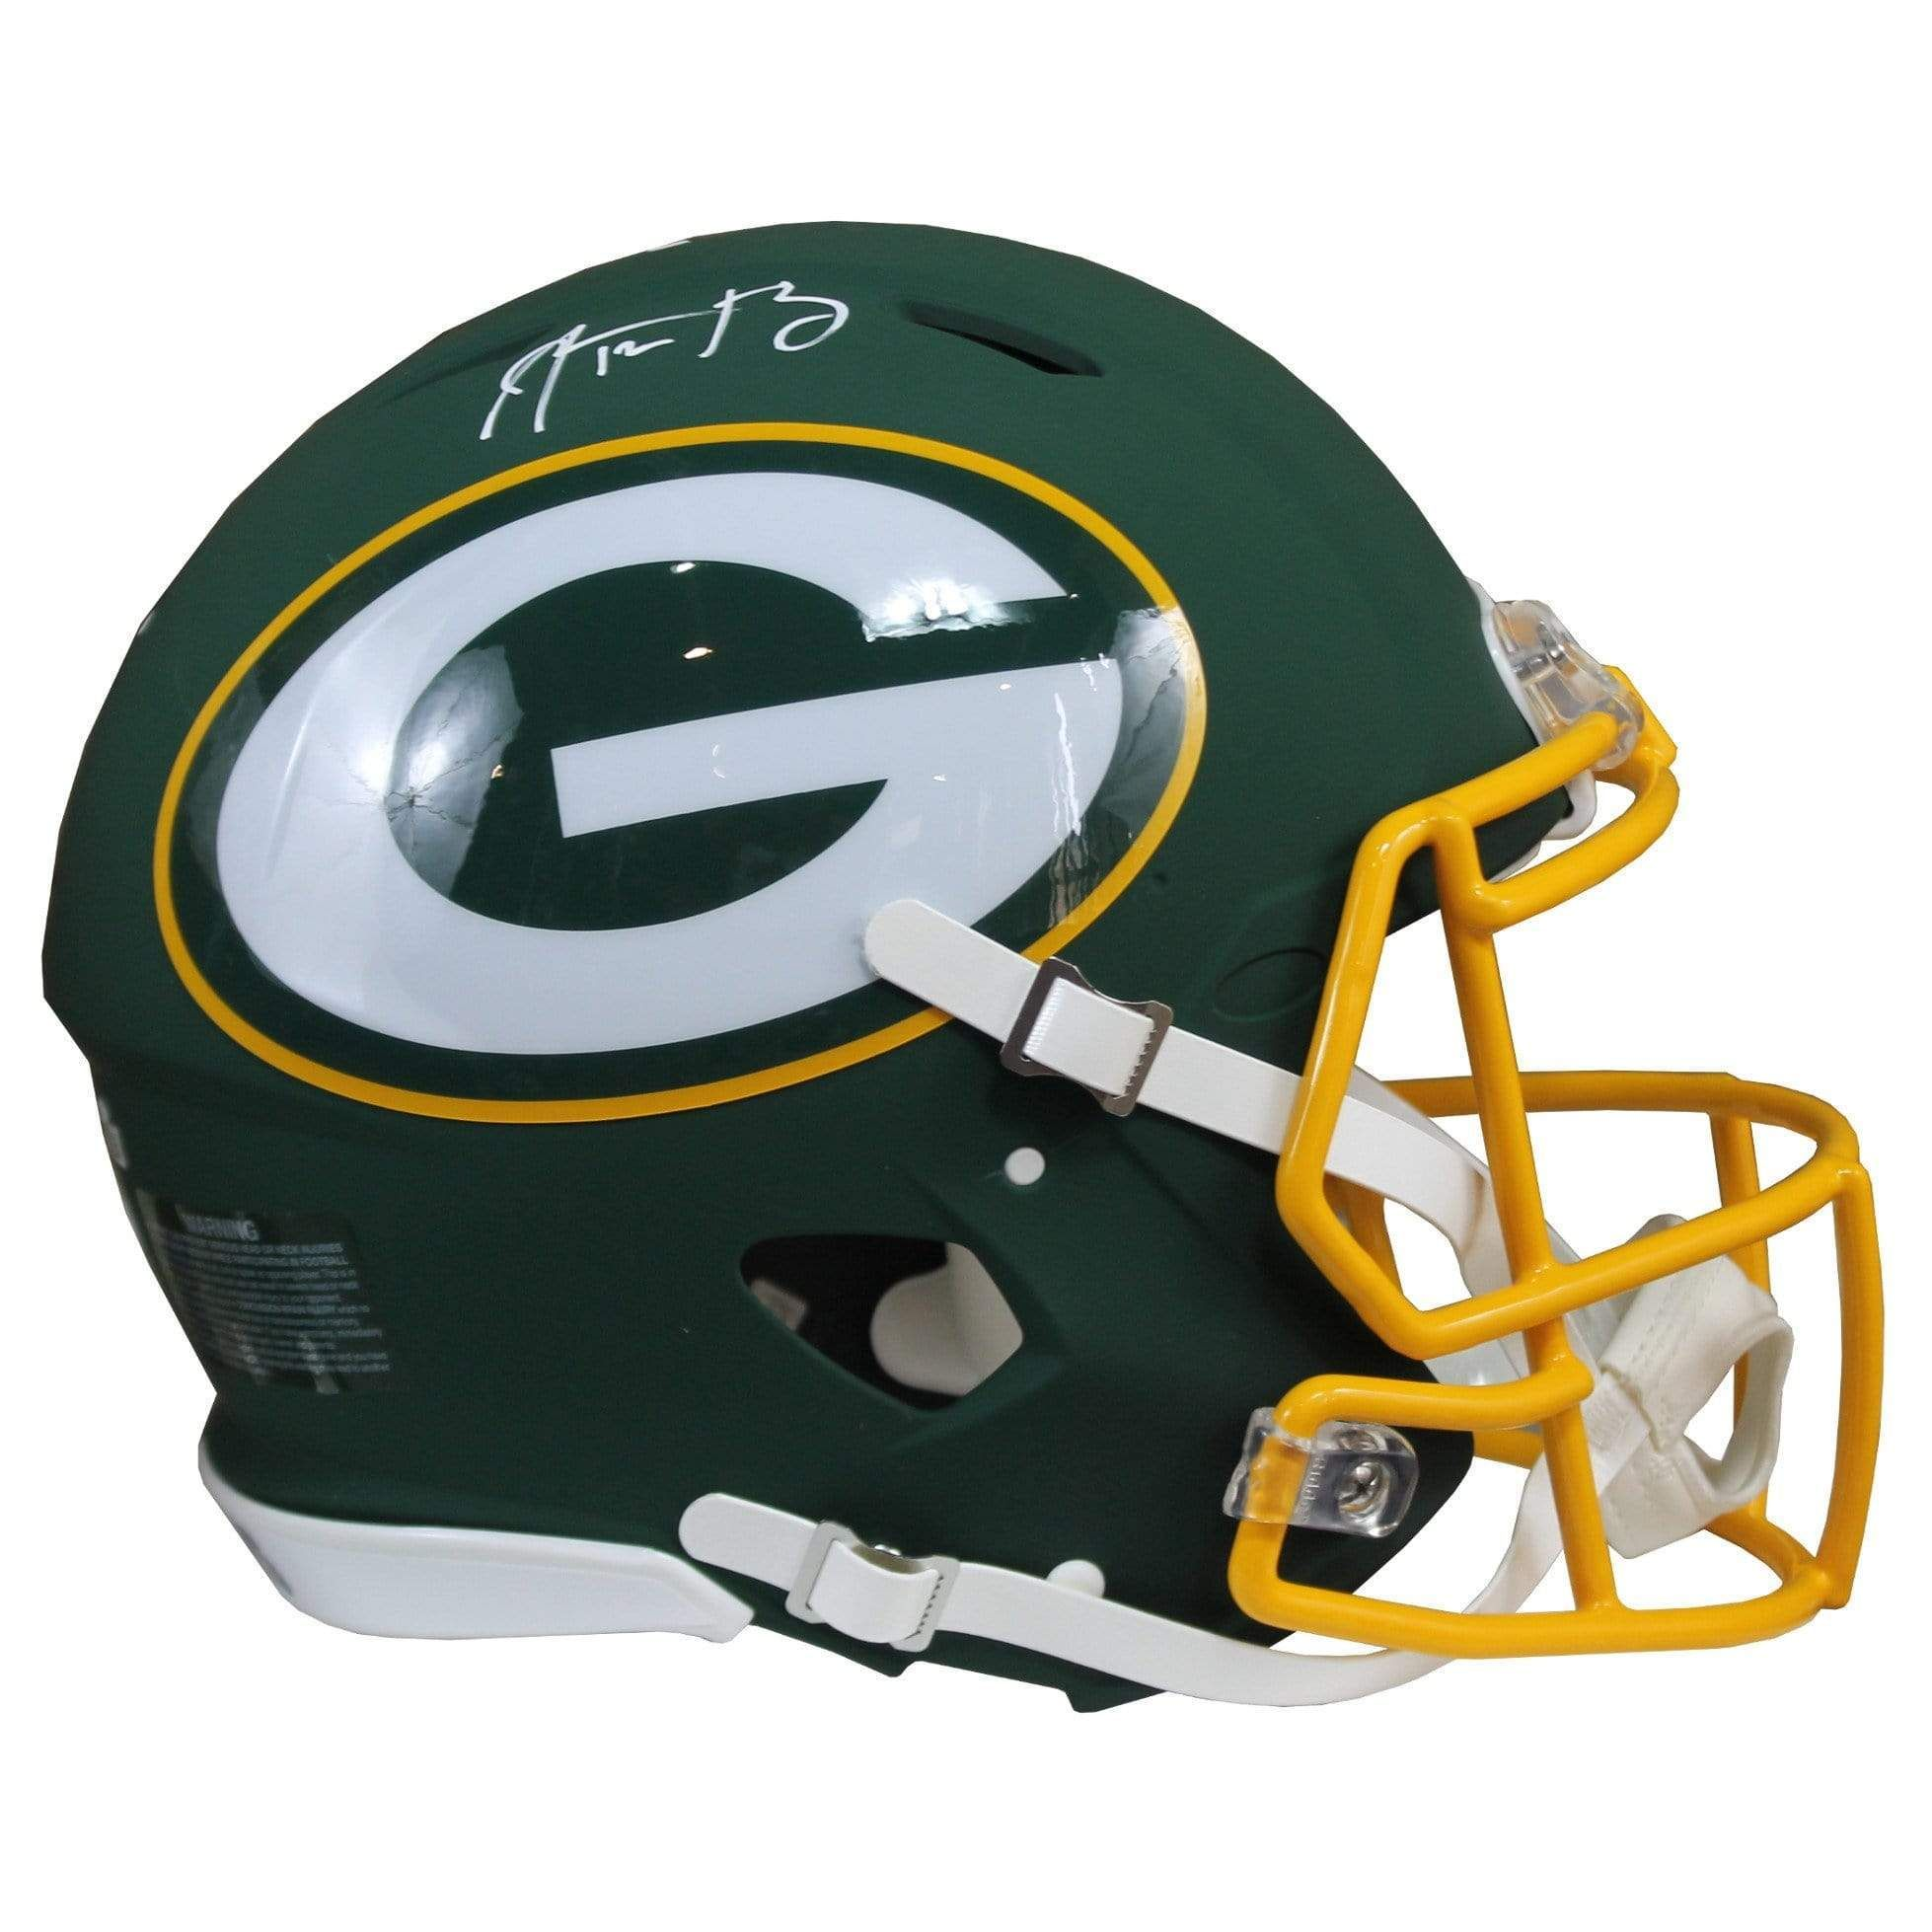 Aaron Rodgers Signed Green Bay Packers Riddell Speed Full Size Green Amp Nfl Helmet Nfl Green Bay Packers Green Bay